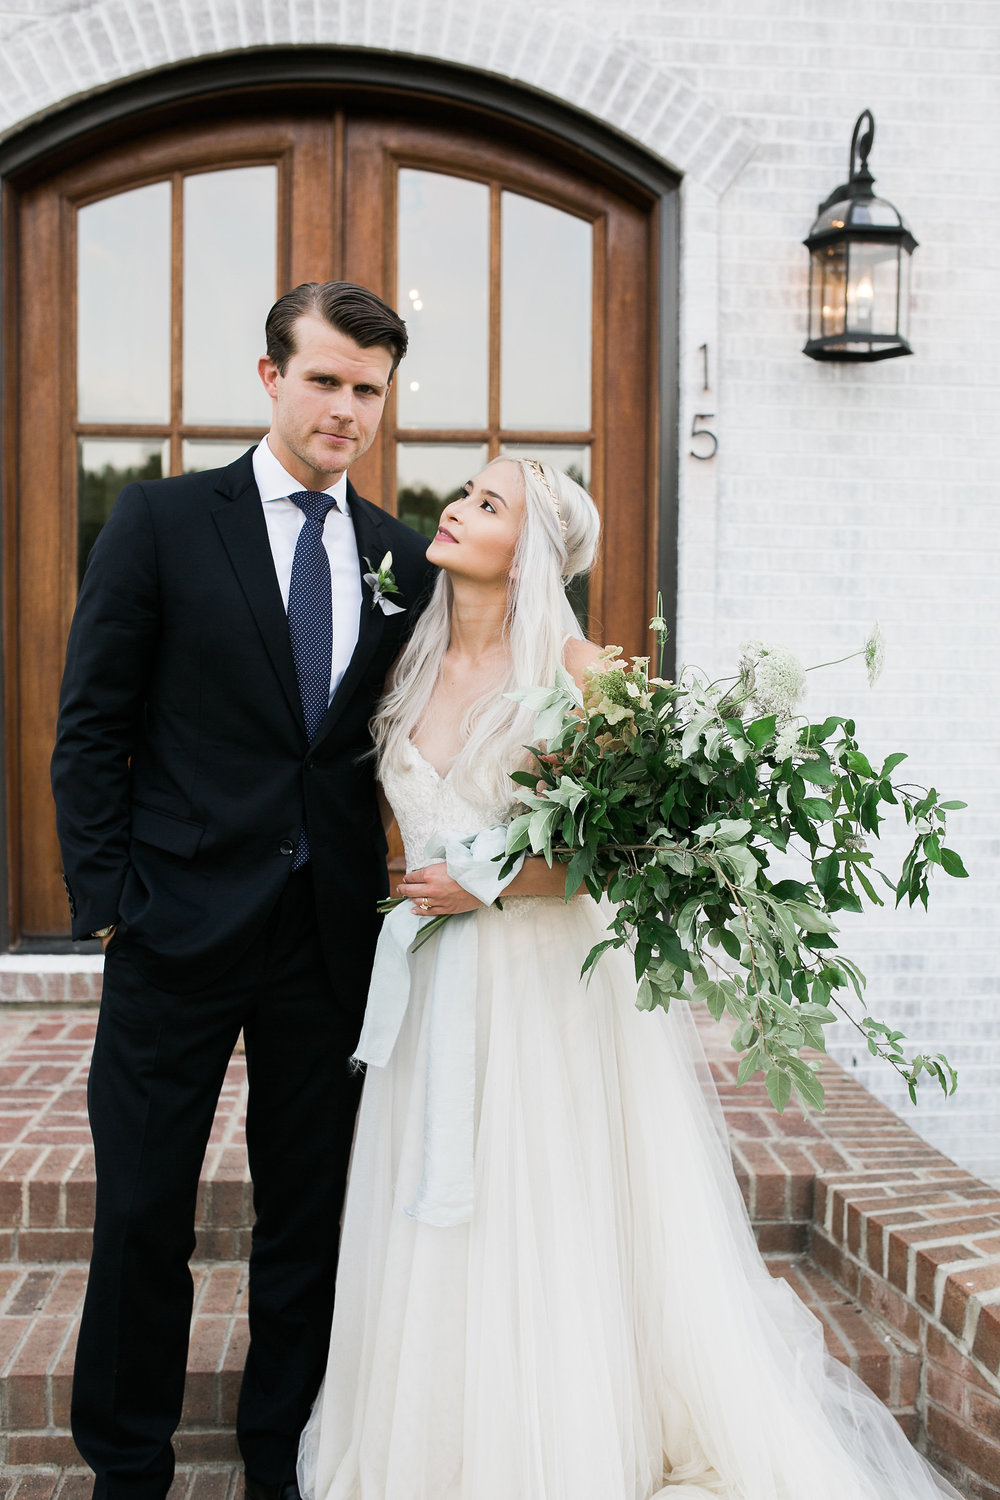 An Intimate Affair Styled Shoot  Photo By Koral Bleu Photography  Featured on Joy Wed